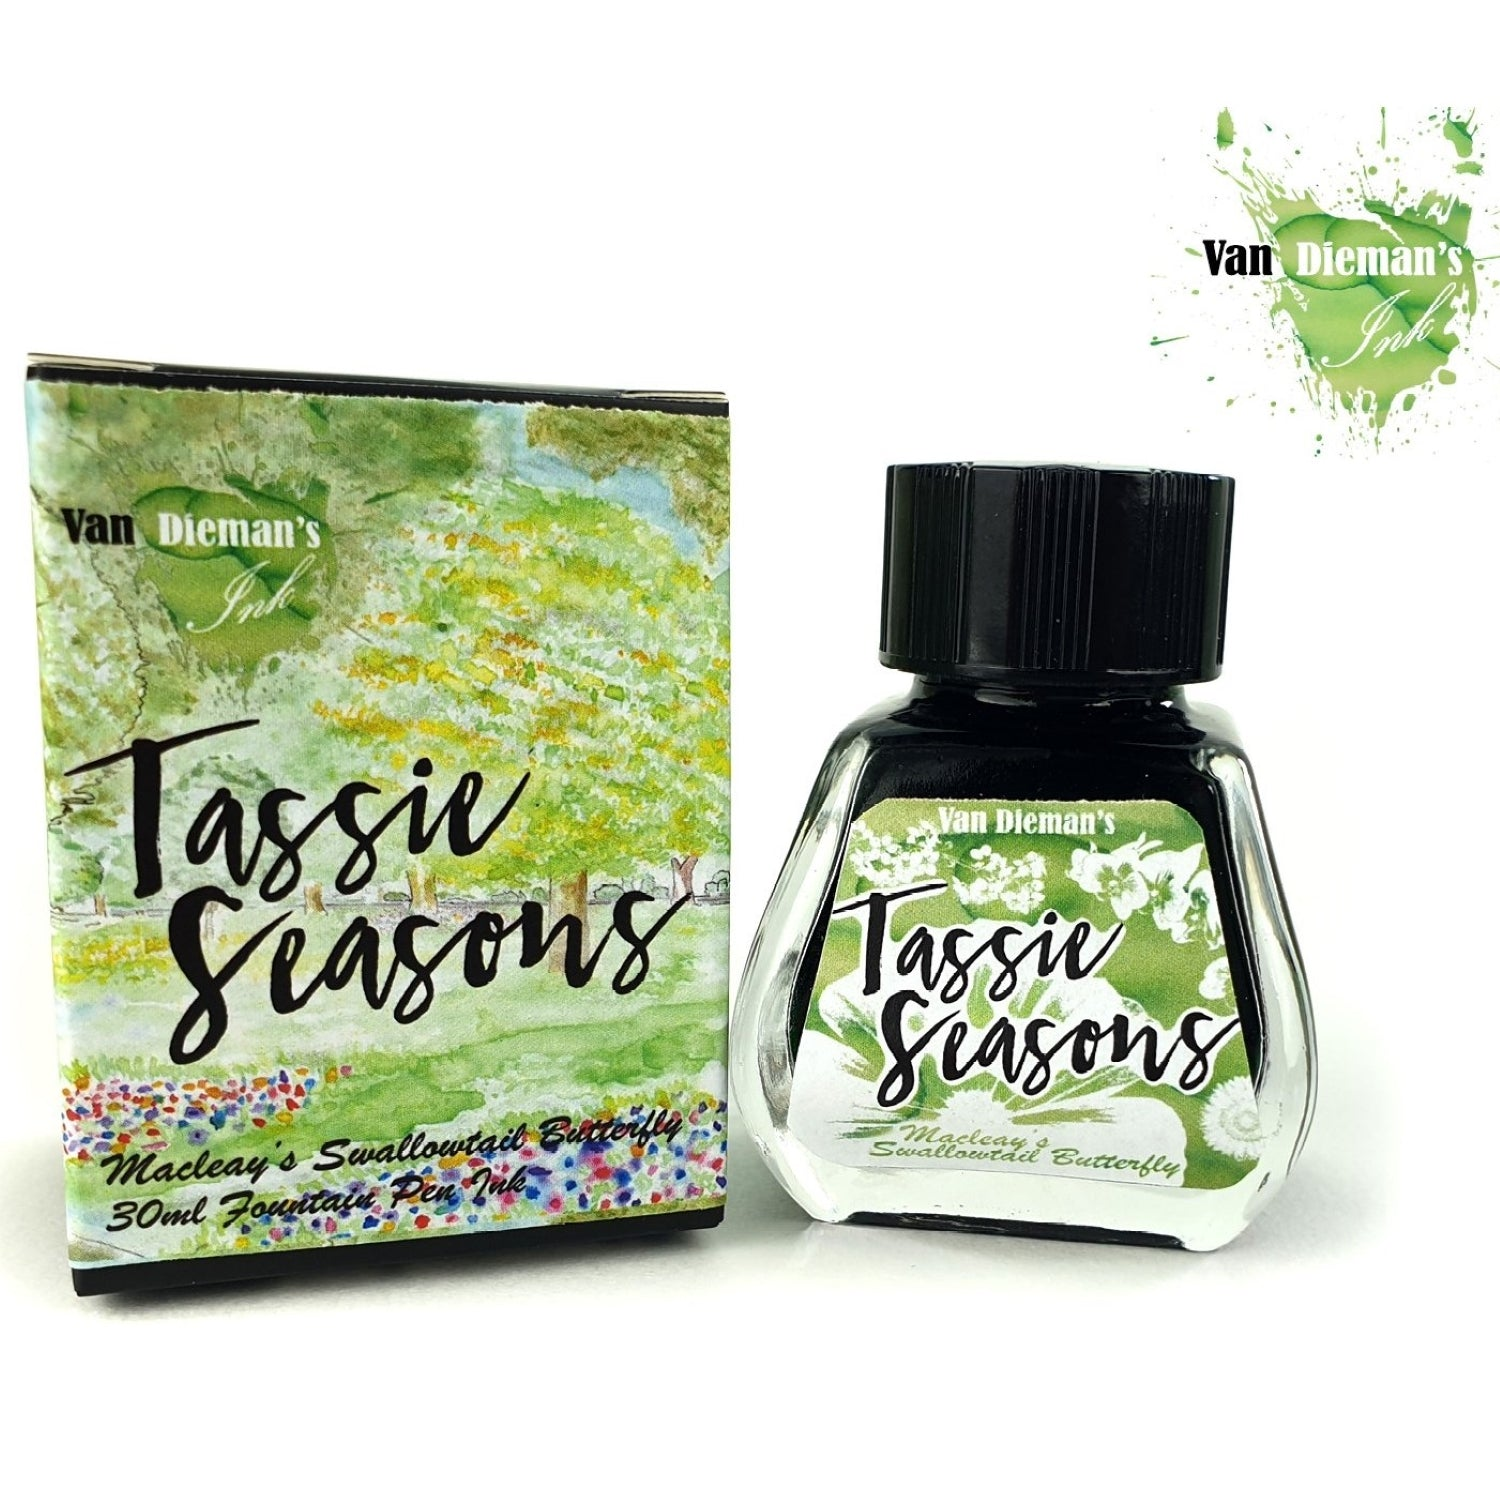 Van Diemans Tassie Seasons (Spring) Macleays Swallowtail Butterfly Ink 30ml